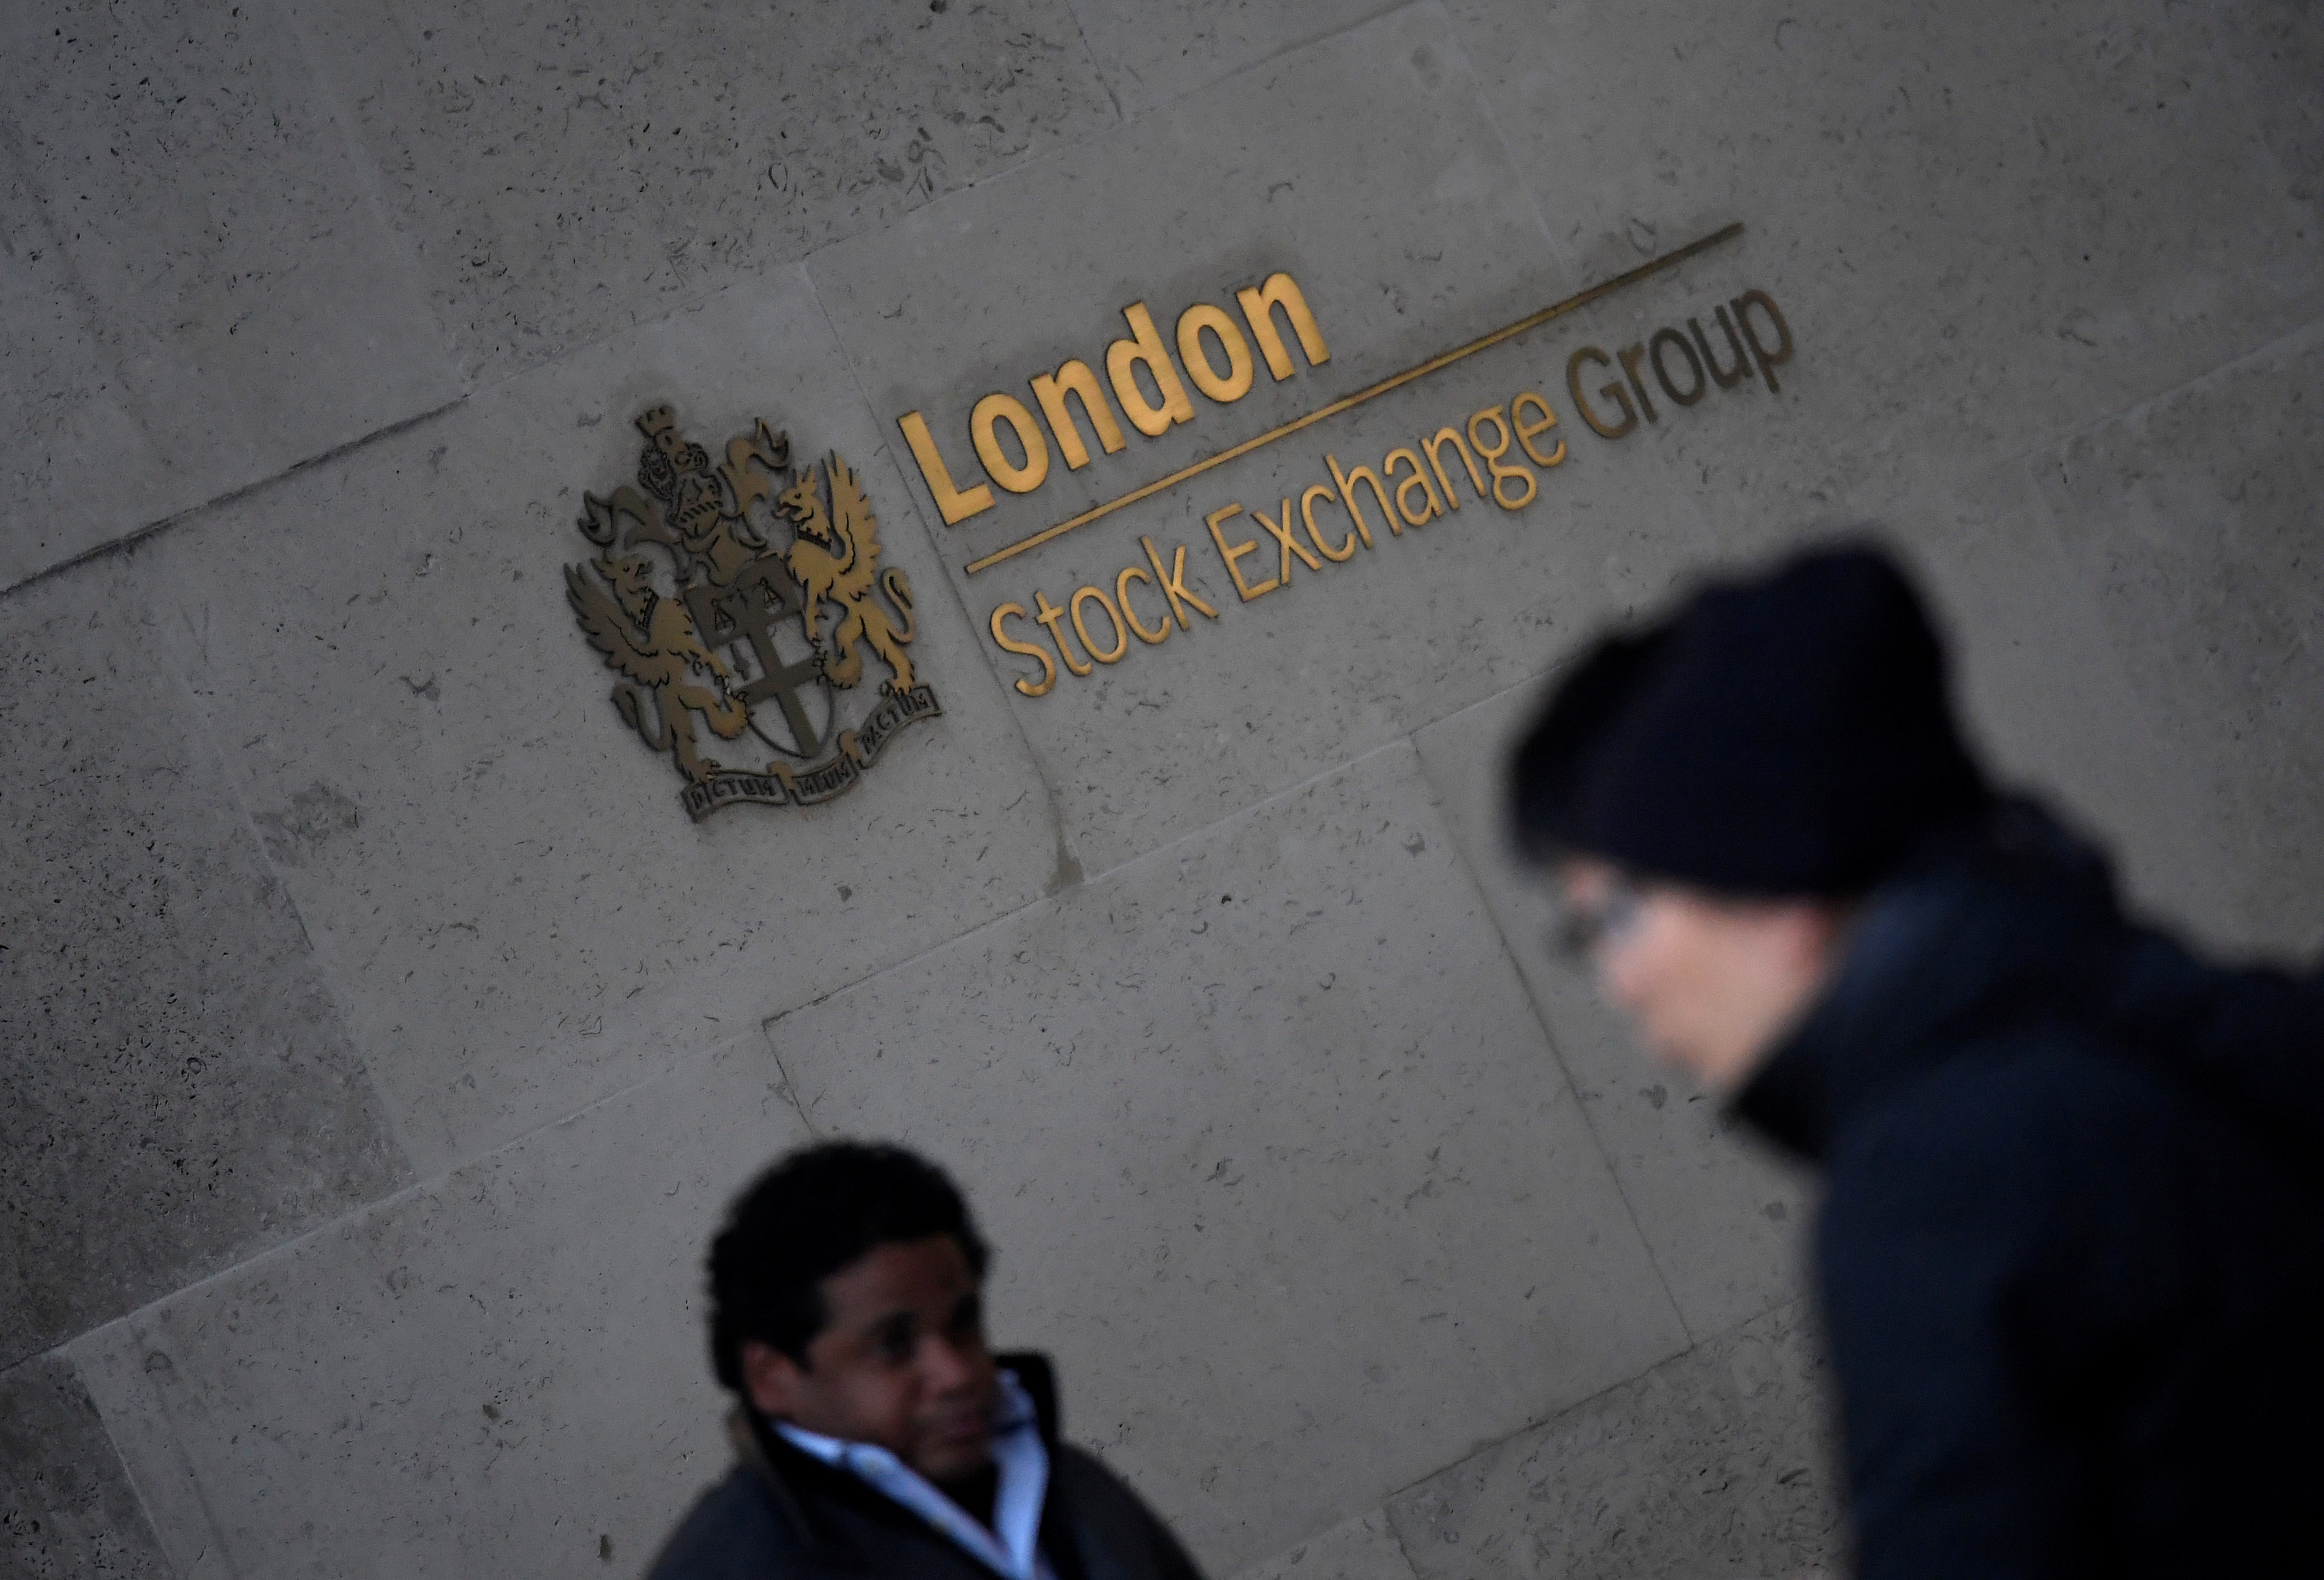 People walk past the London Stock Exchange Group offices in the City of London, Britain, December 29, 2017. REUTERS/Toby Melville/File photo